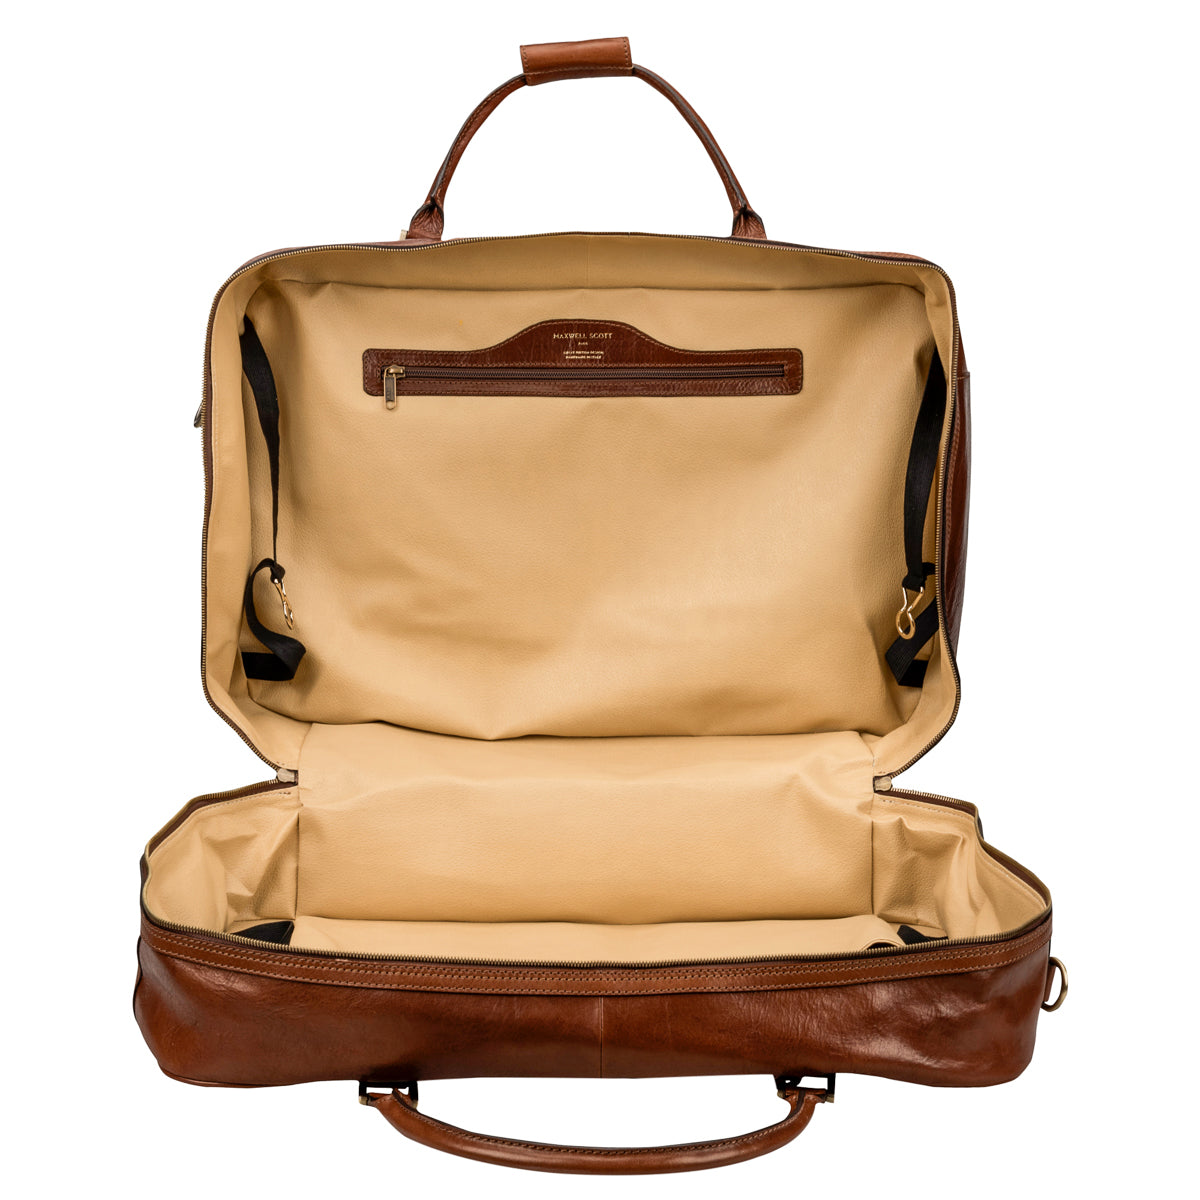 Image 4 of the 'Maurizio' Chestnut Italian Veg-Tanned Leather Suitcase